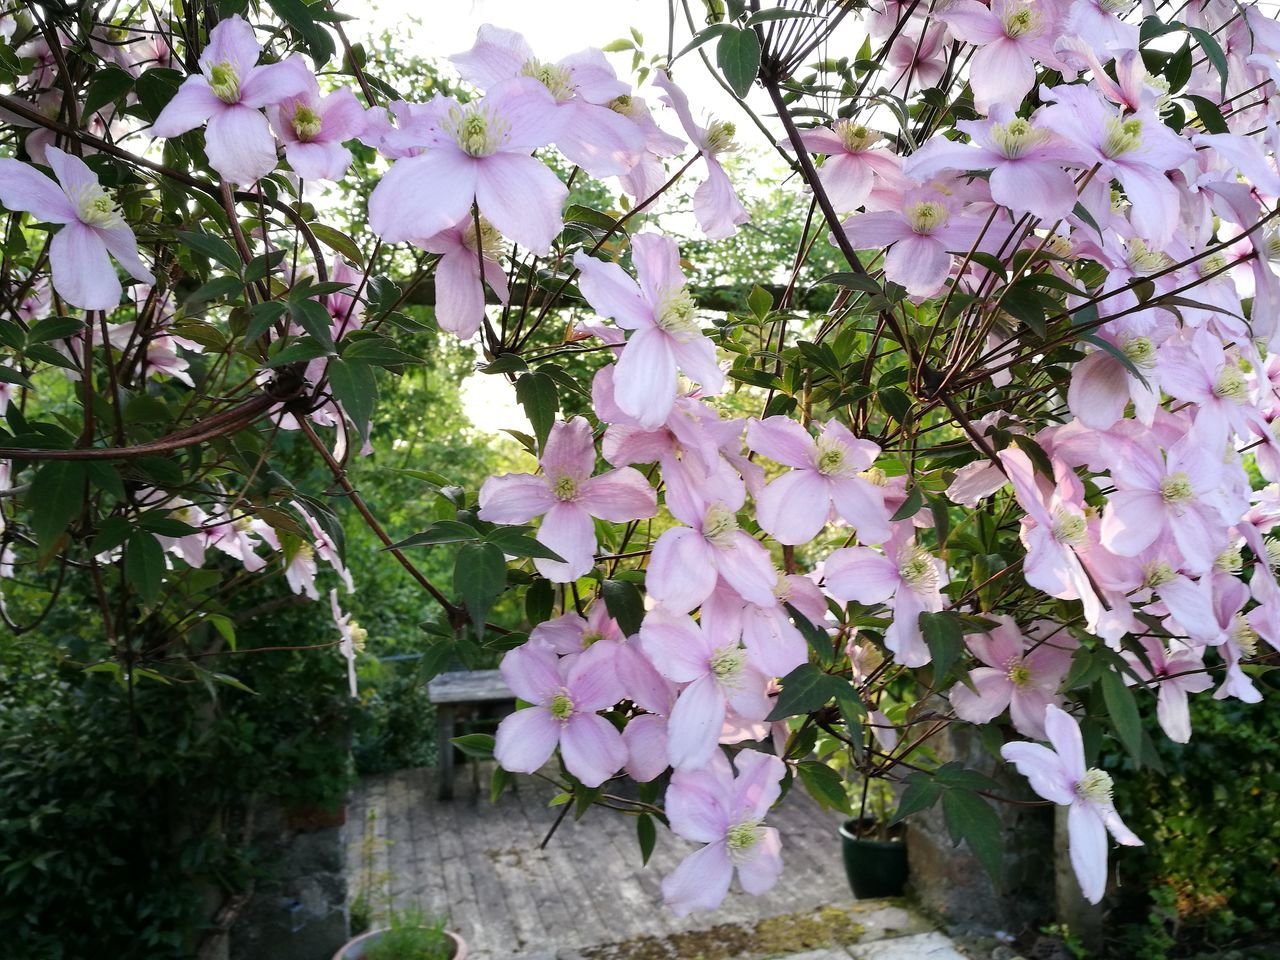 Garden Clematis Flower Clematis Montana Our Scottish Garden Outdoors Flowers Blooming Close-up Full Bloom